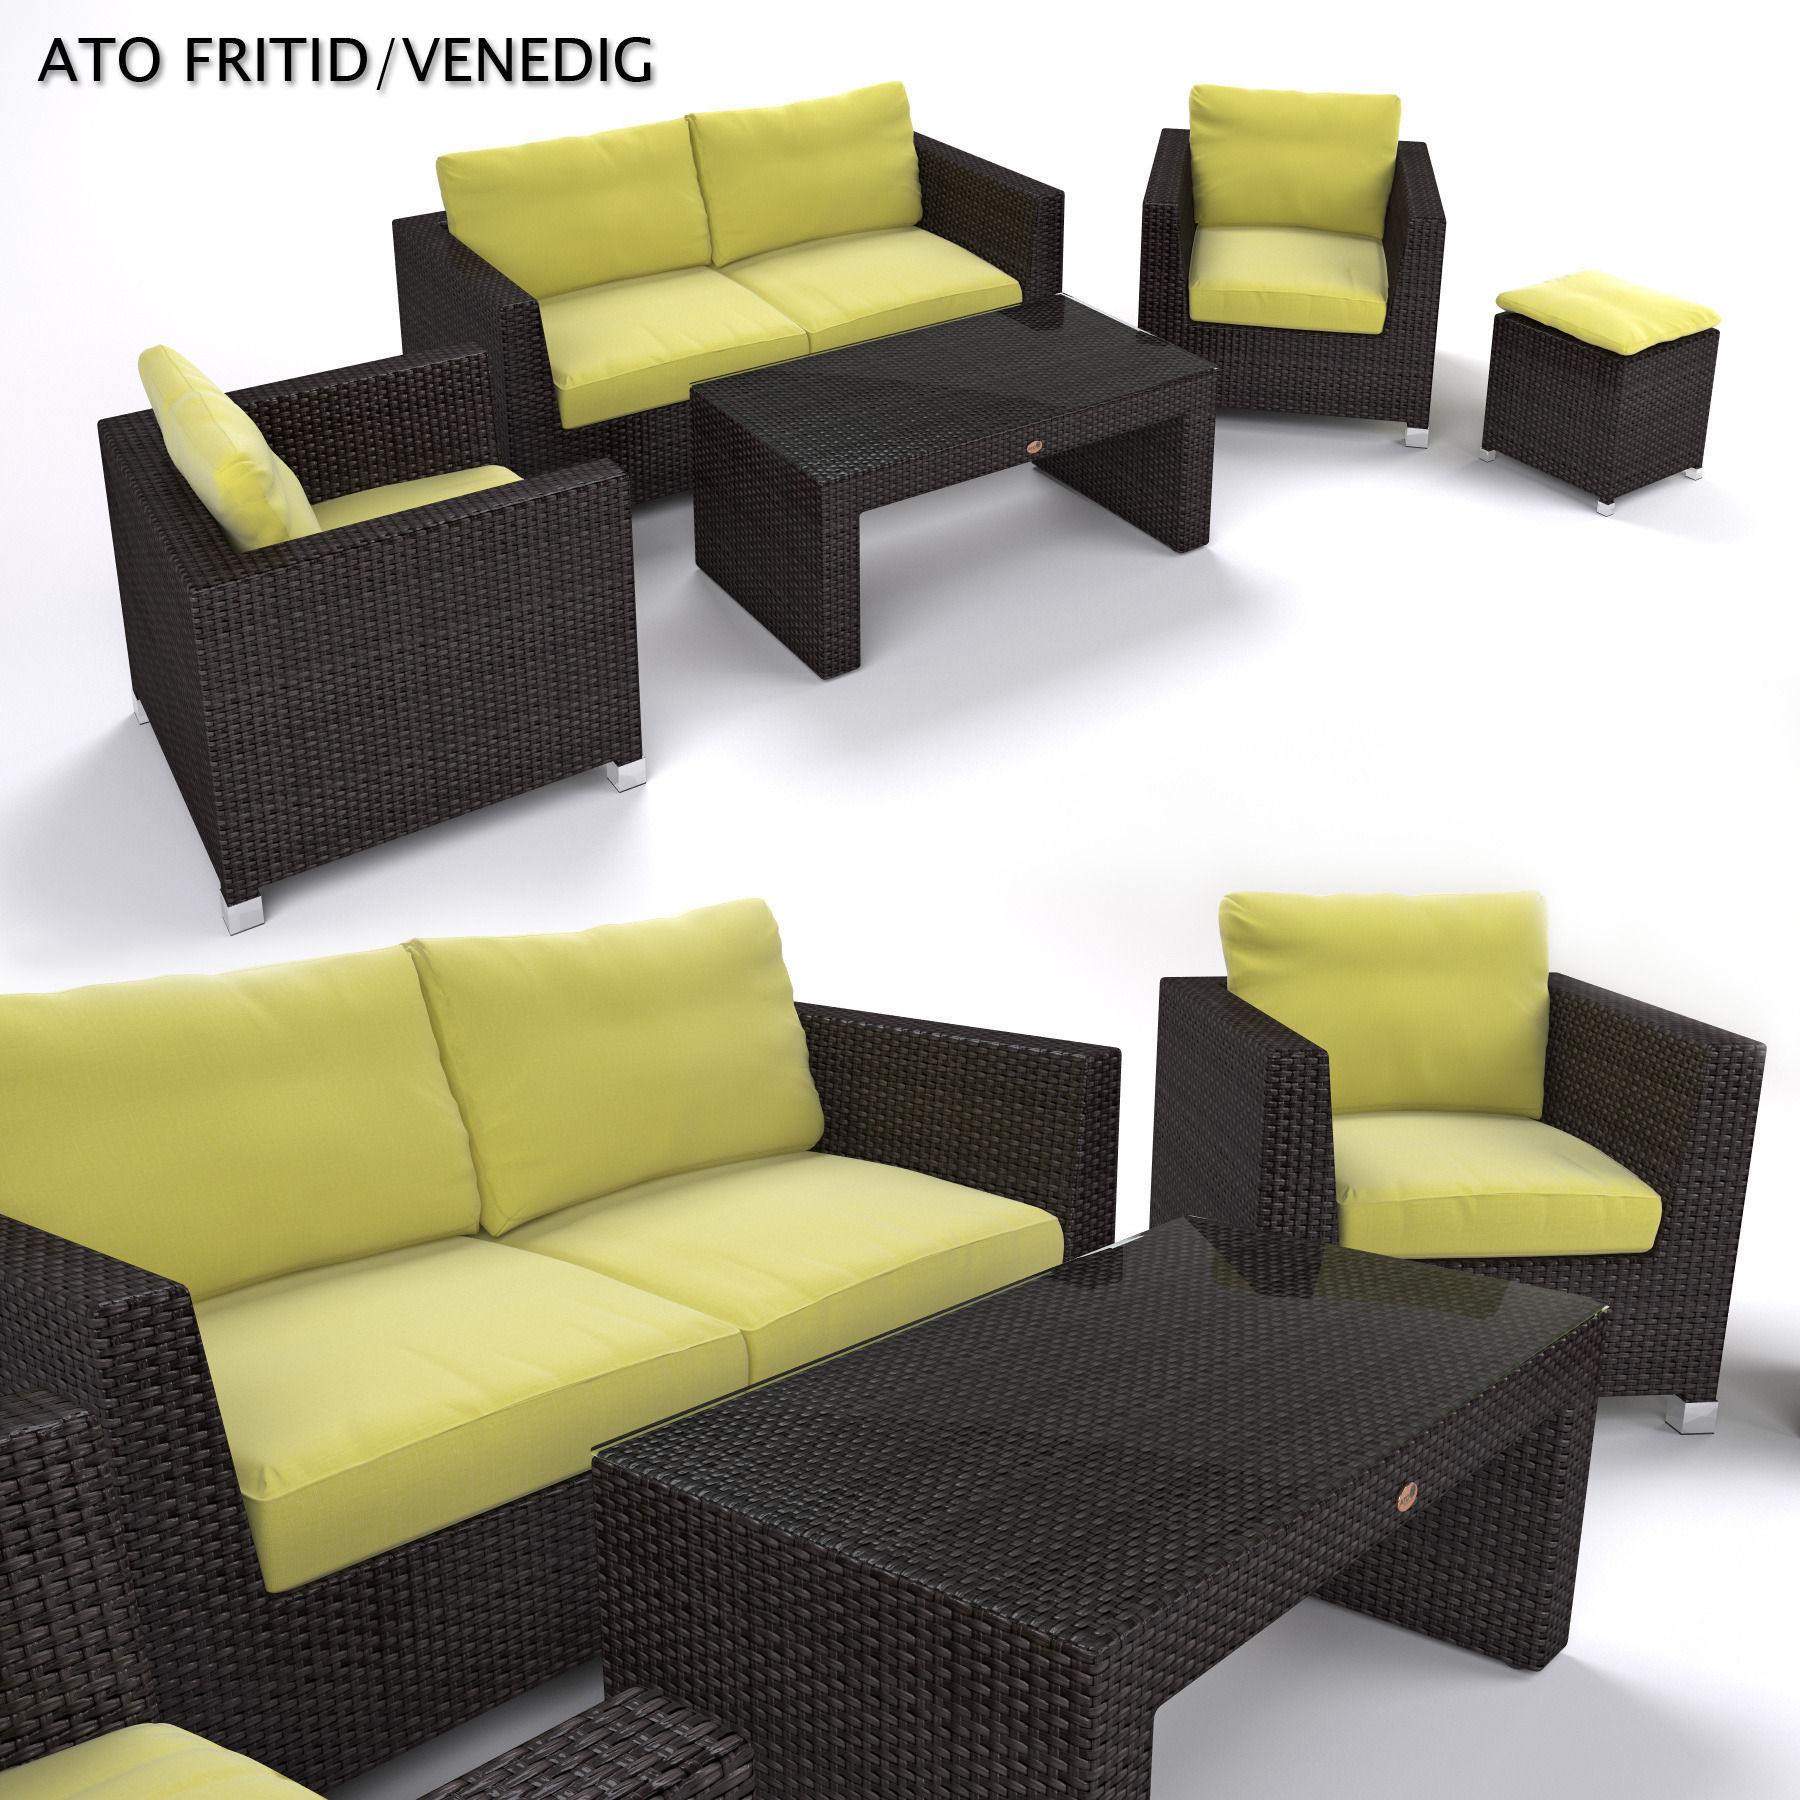 garden furniture synthetic rattan set ato venedig 3d model max obj fbx mtl 1 - Garden Furniture 3d Model